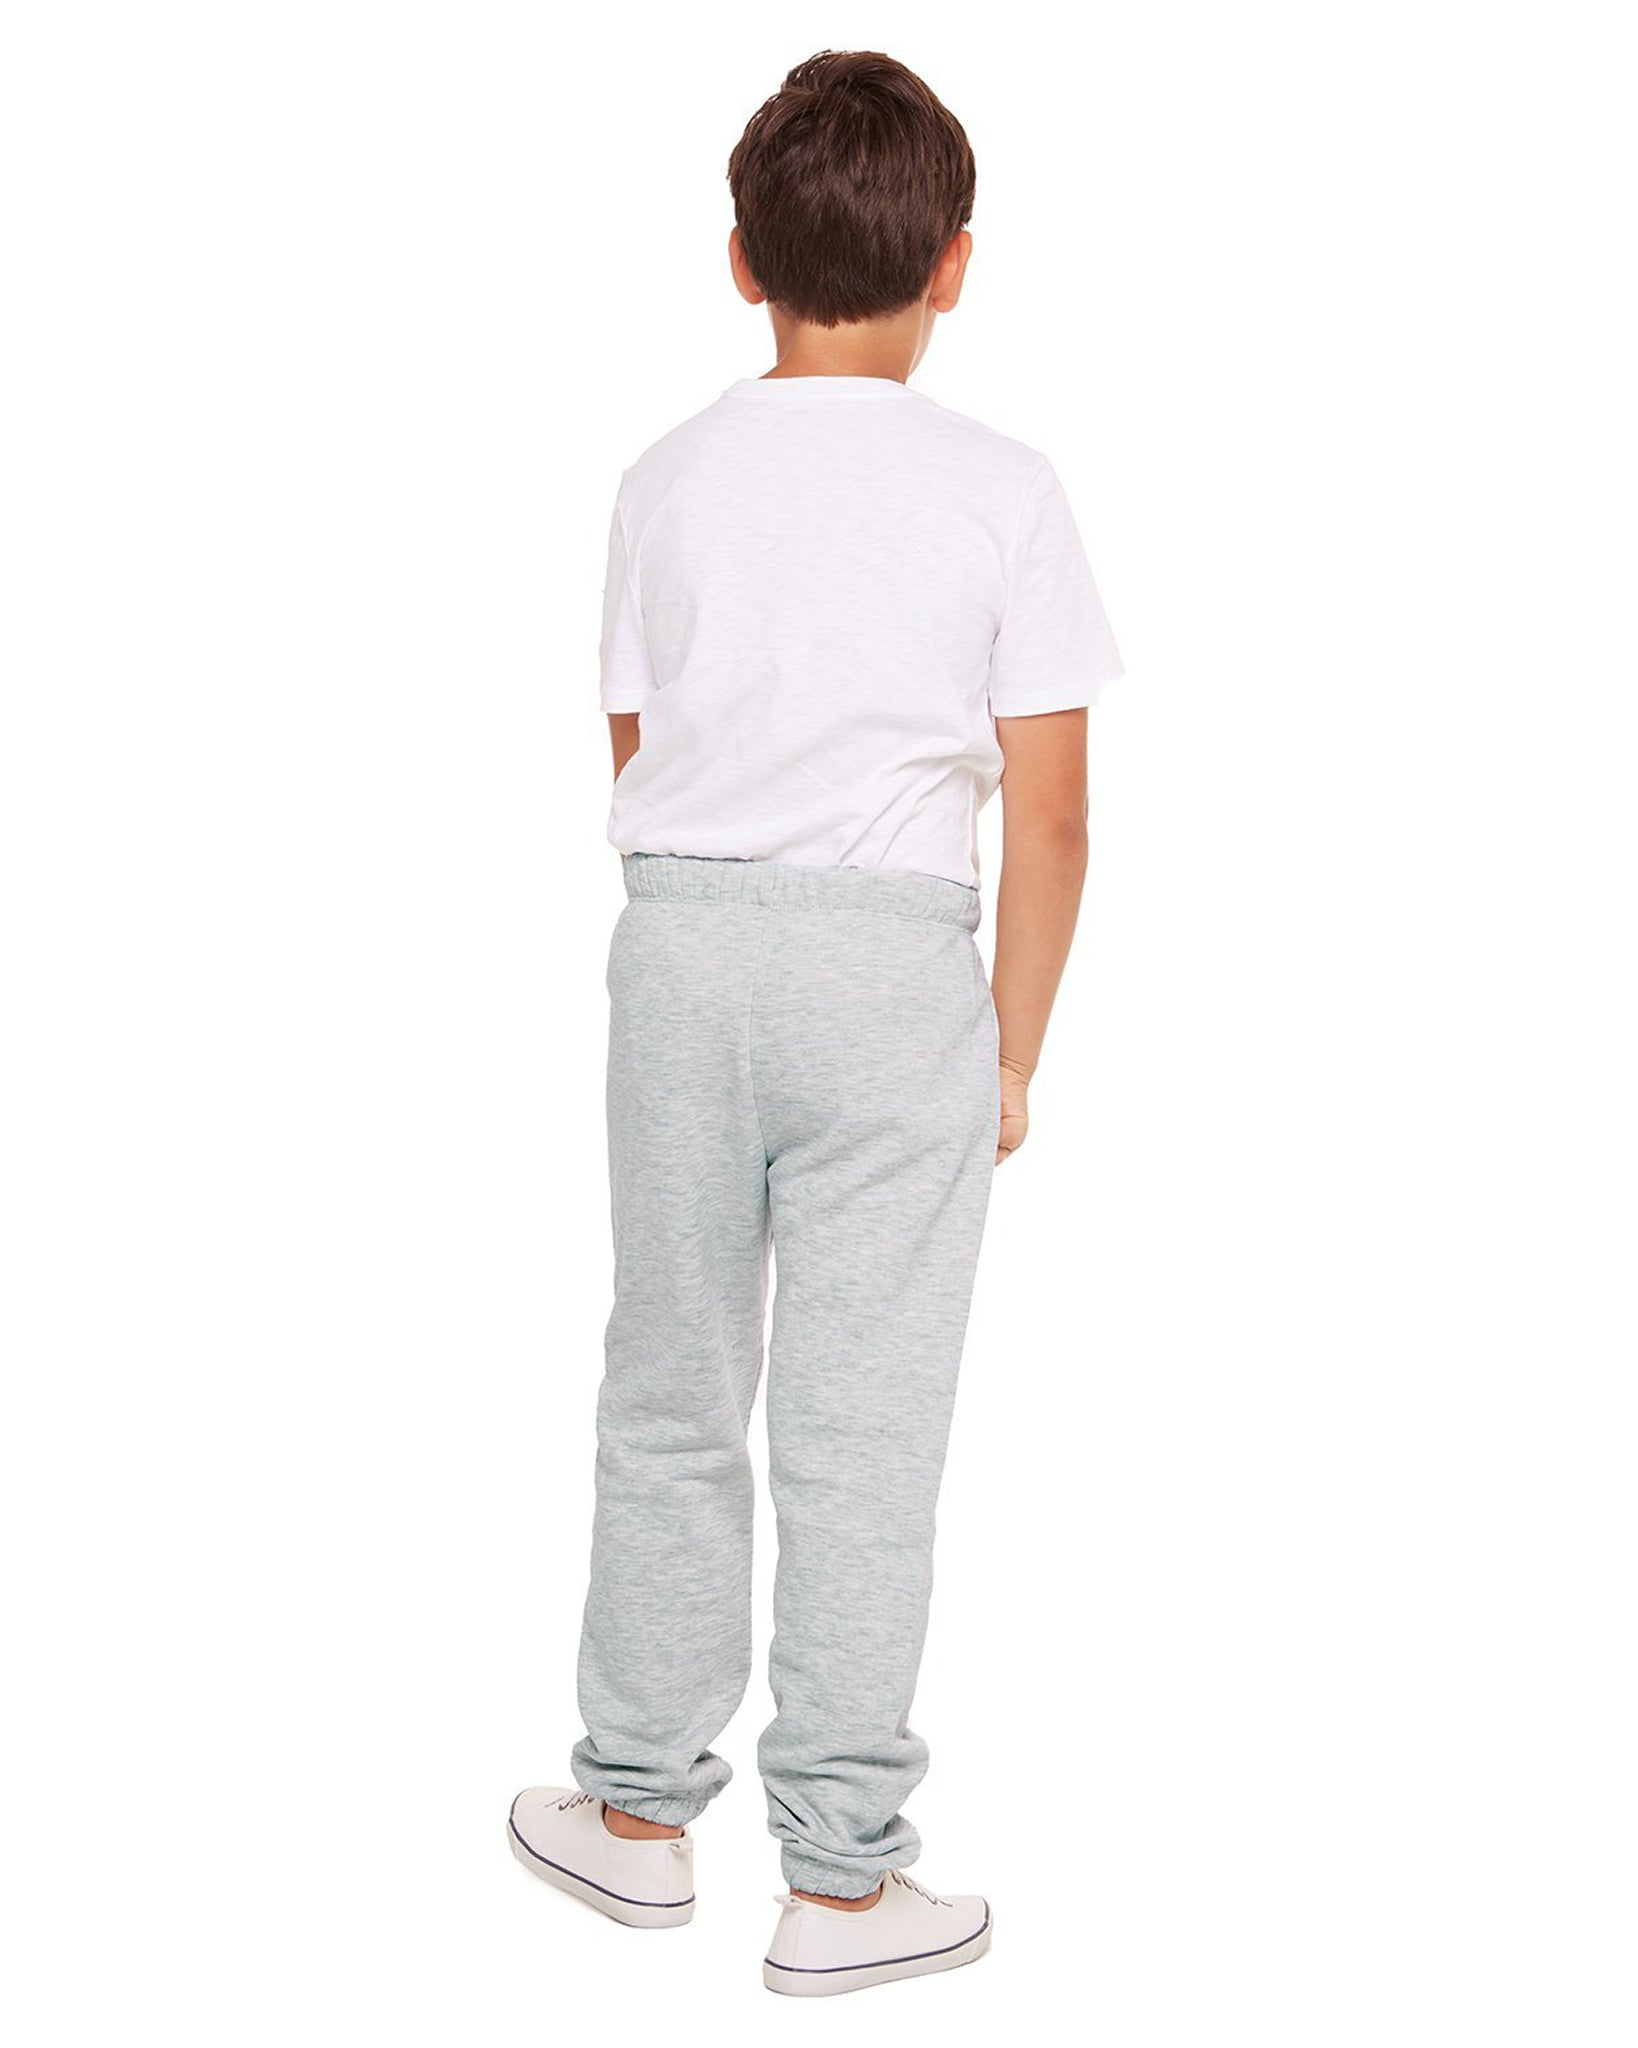 Lazypants Niki Fleece Sweatpants - Girls/Boys - Classic Grey - Activewear - Bottoms - Dancewear Centre Canada